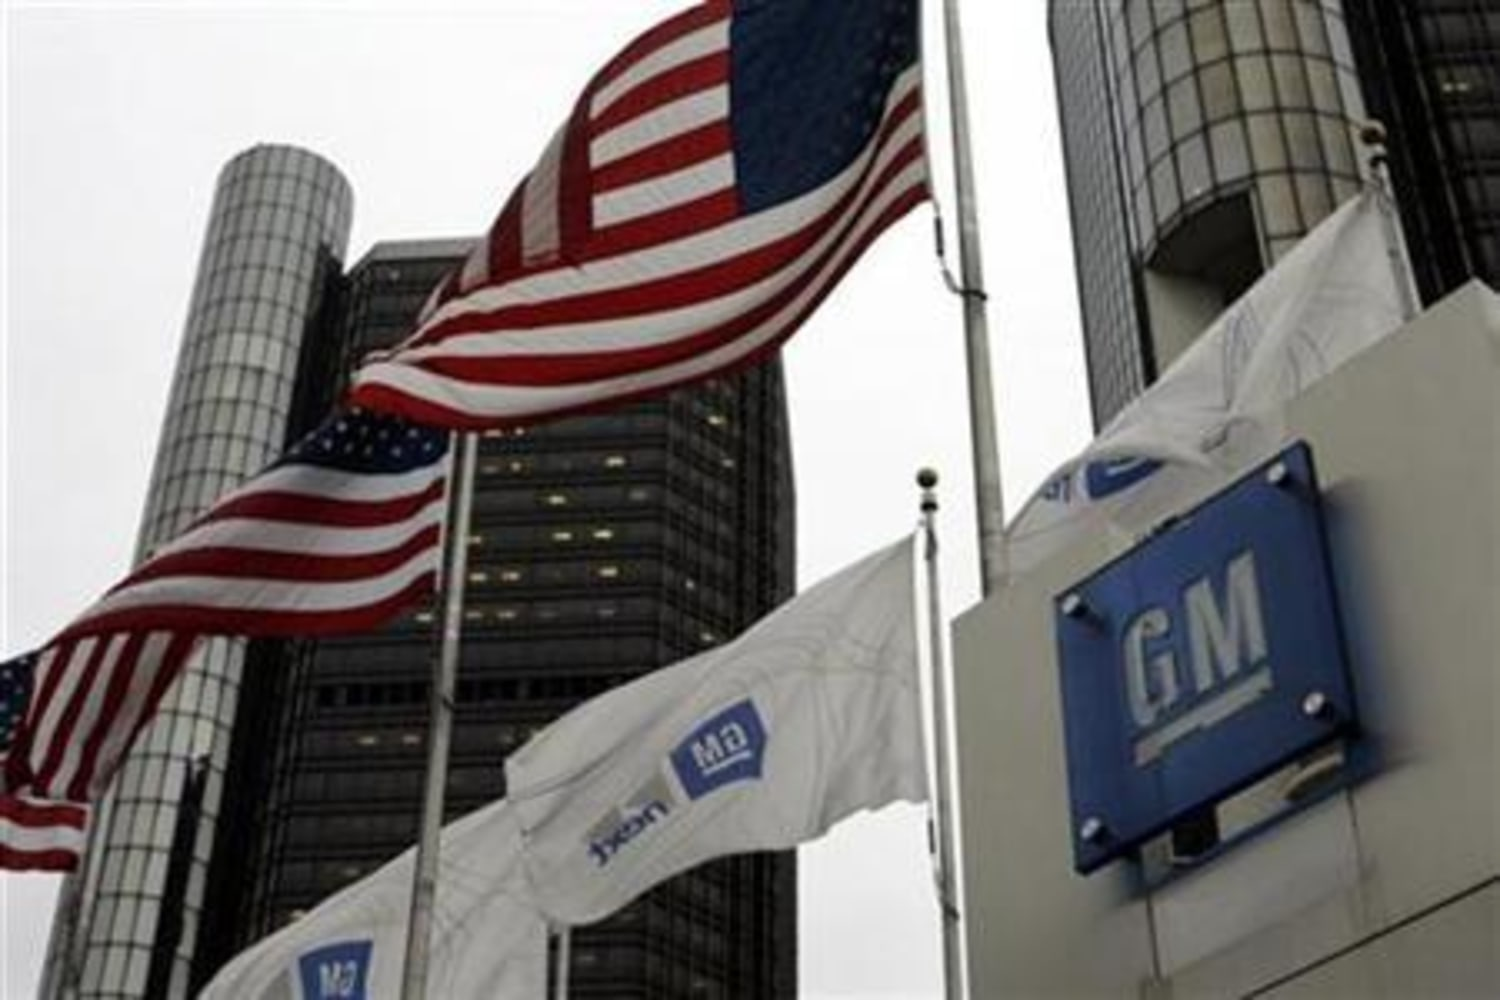 GM to cut second shift, 1300 jobs at Detroit-Hamtramck